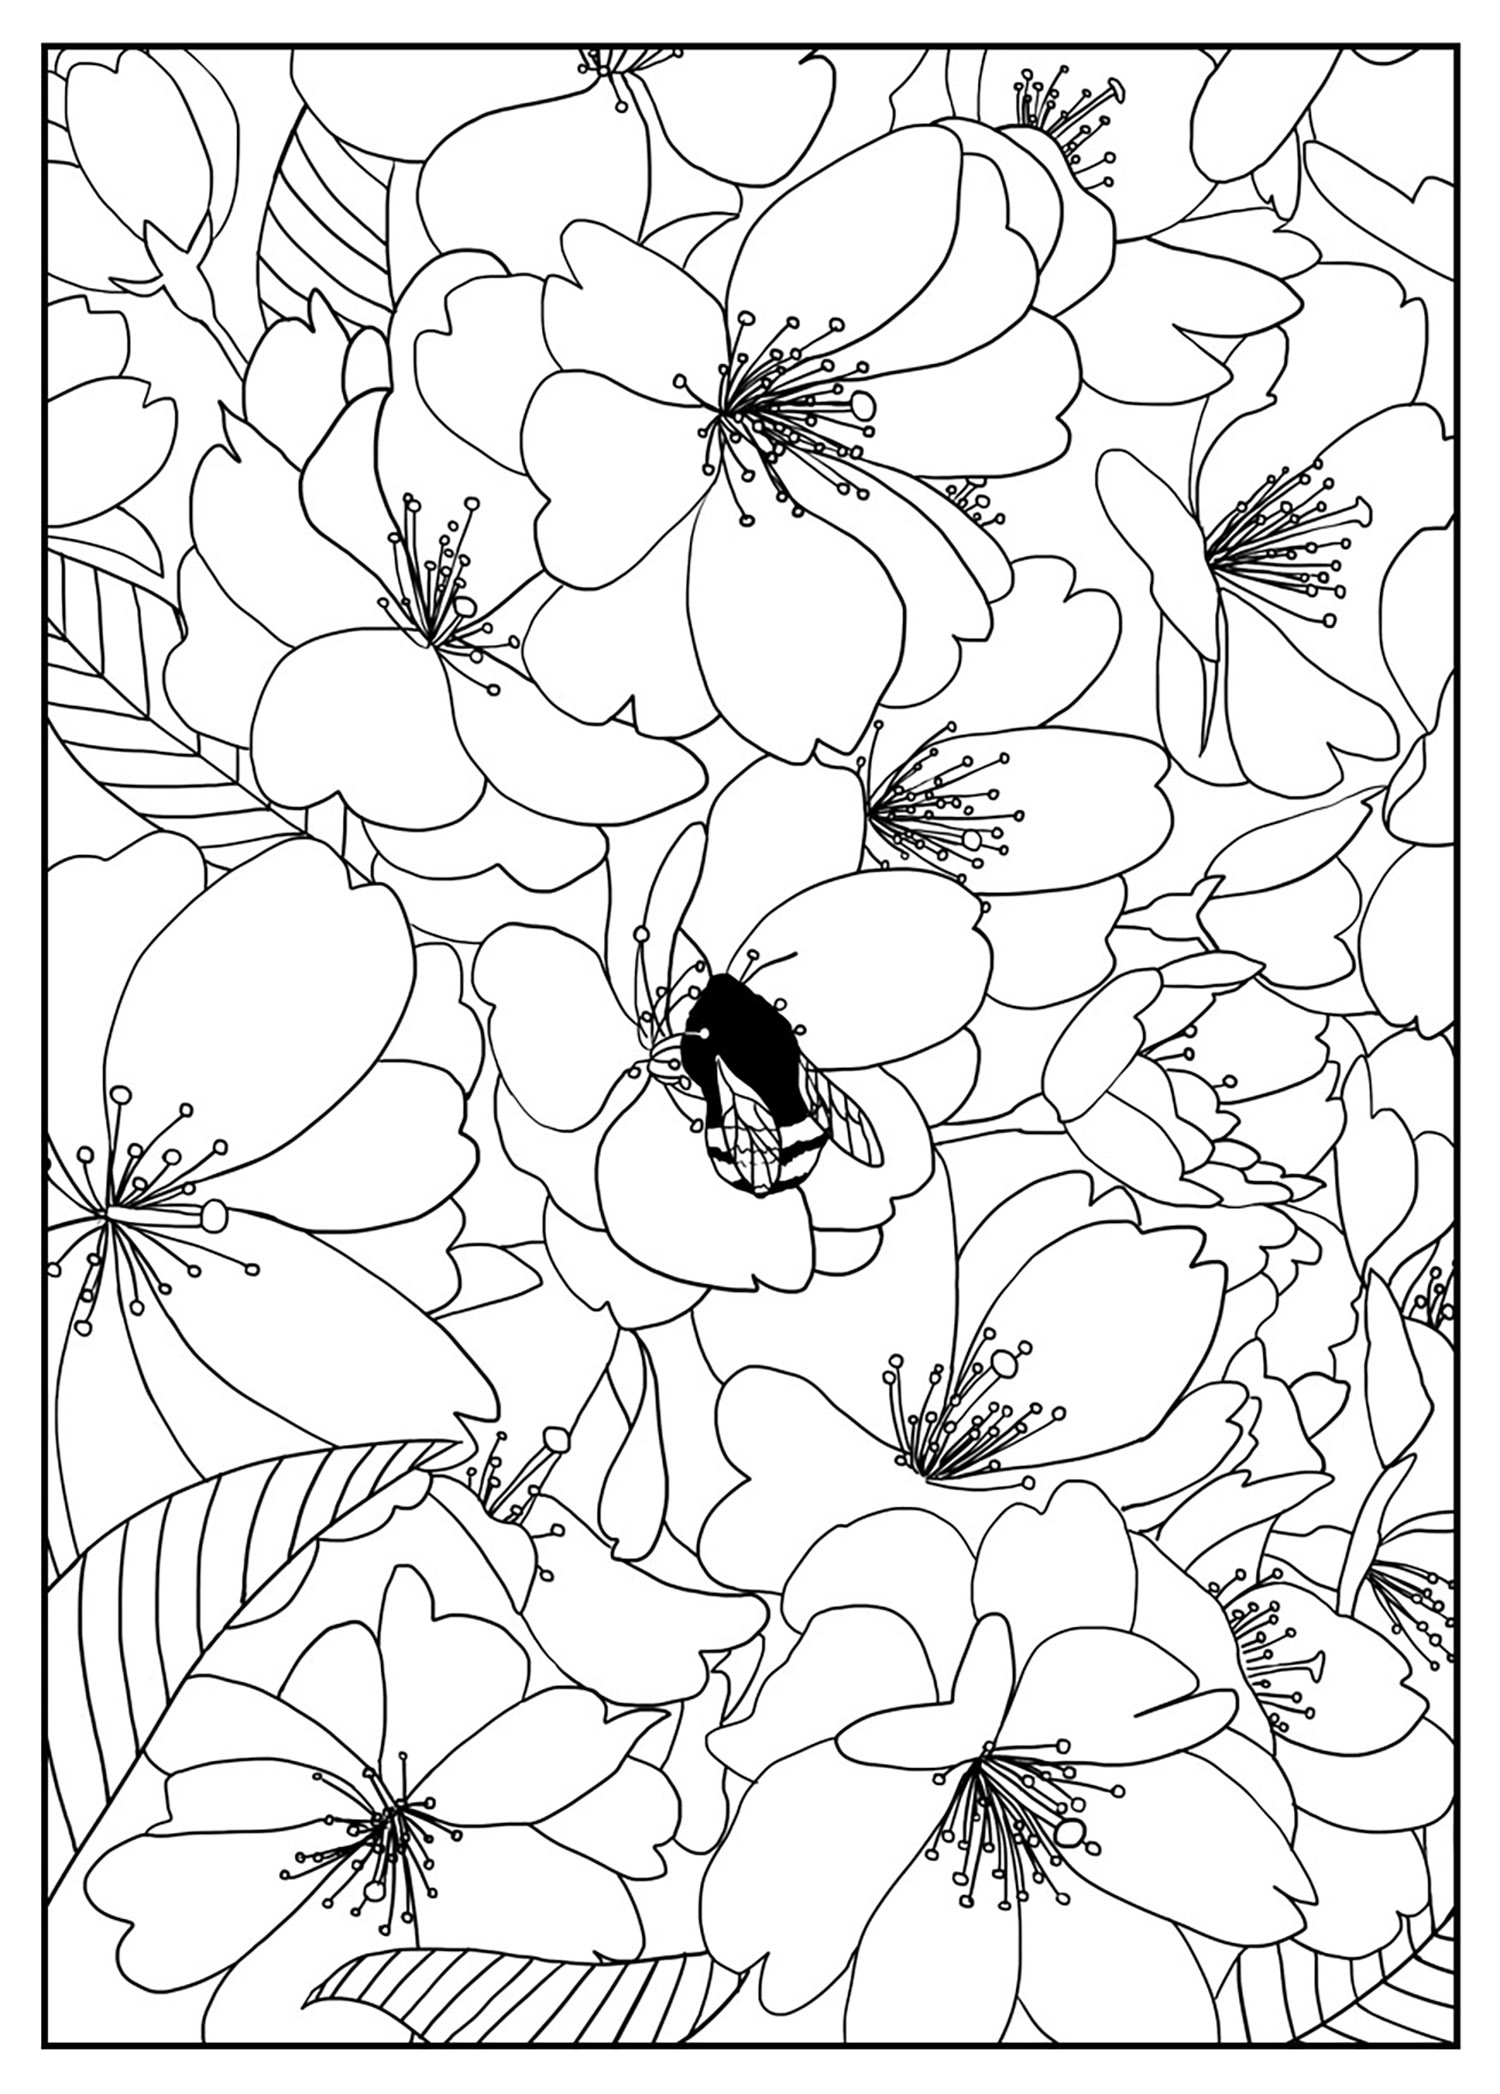 flower patterns to color printable adult colouring page digital download print flower patterns flower to color